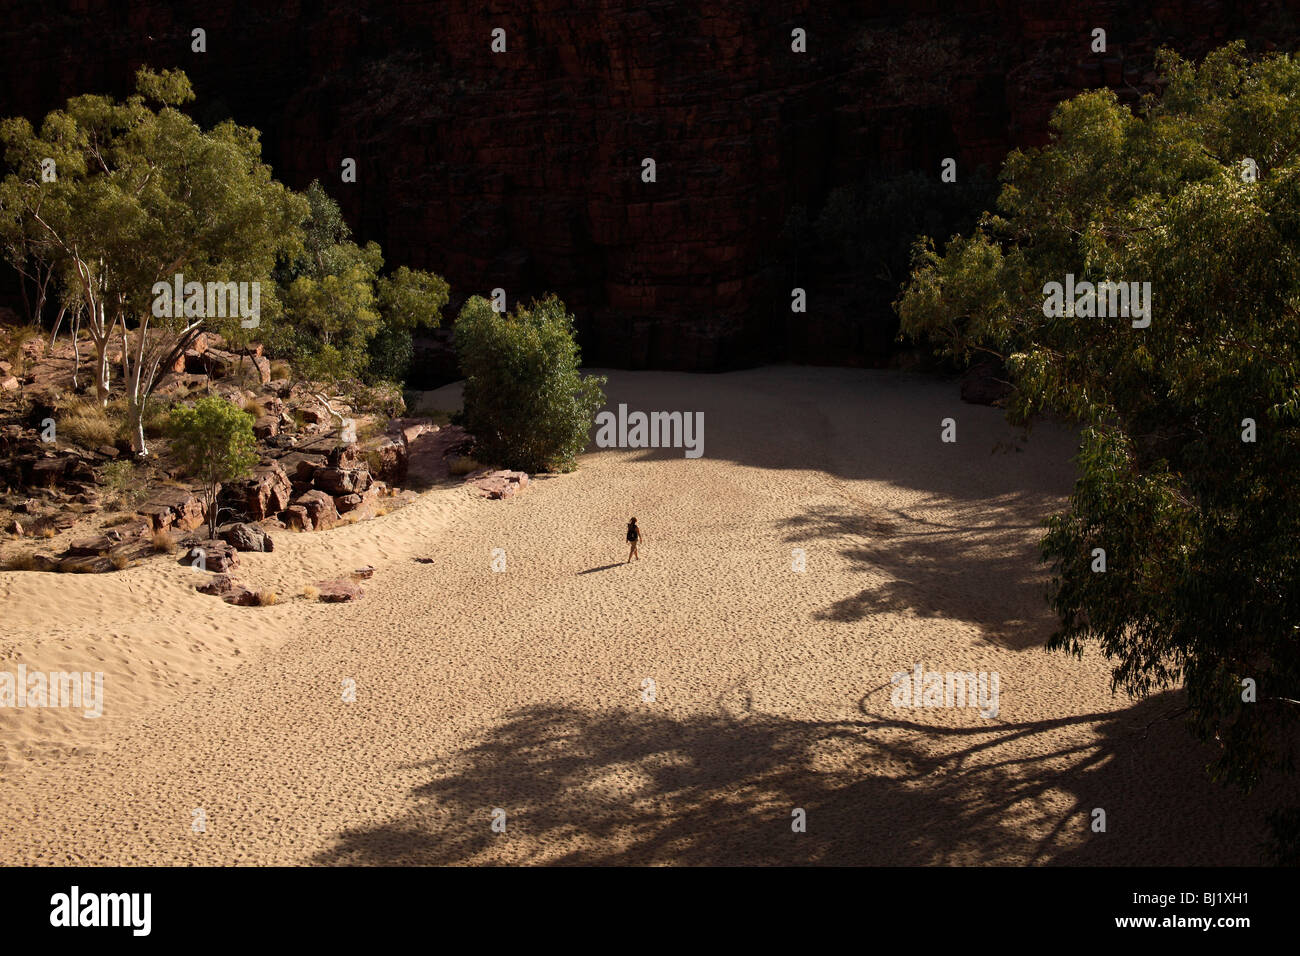 single tourist walking through Trephina Gorge Nature Park in the East MacDonnell Ranges, Northern Territory, Australia - Stock Image